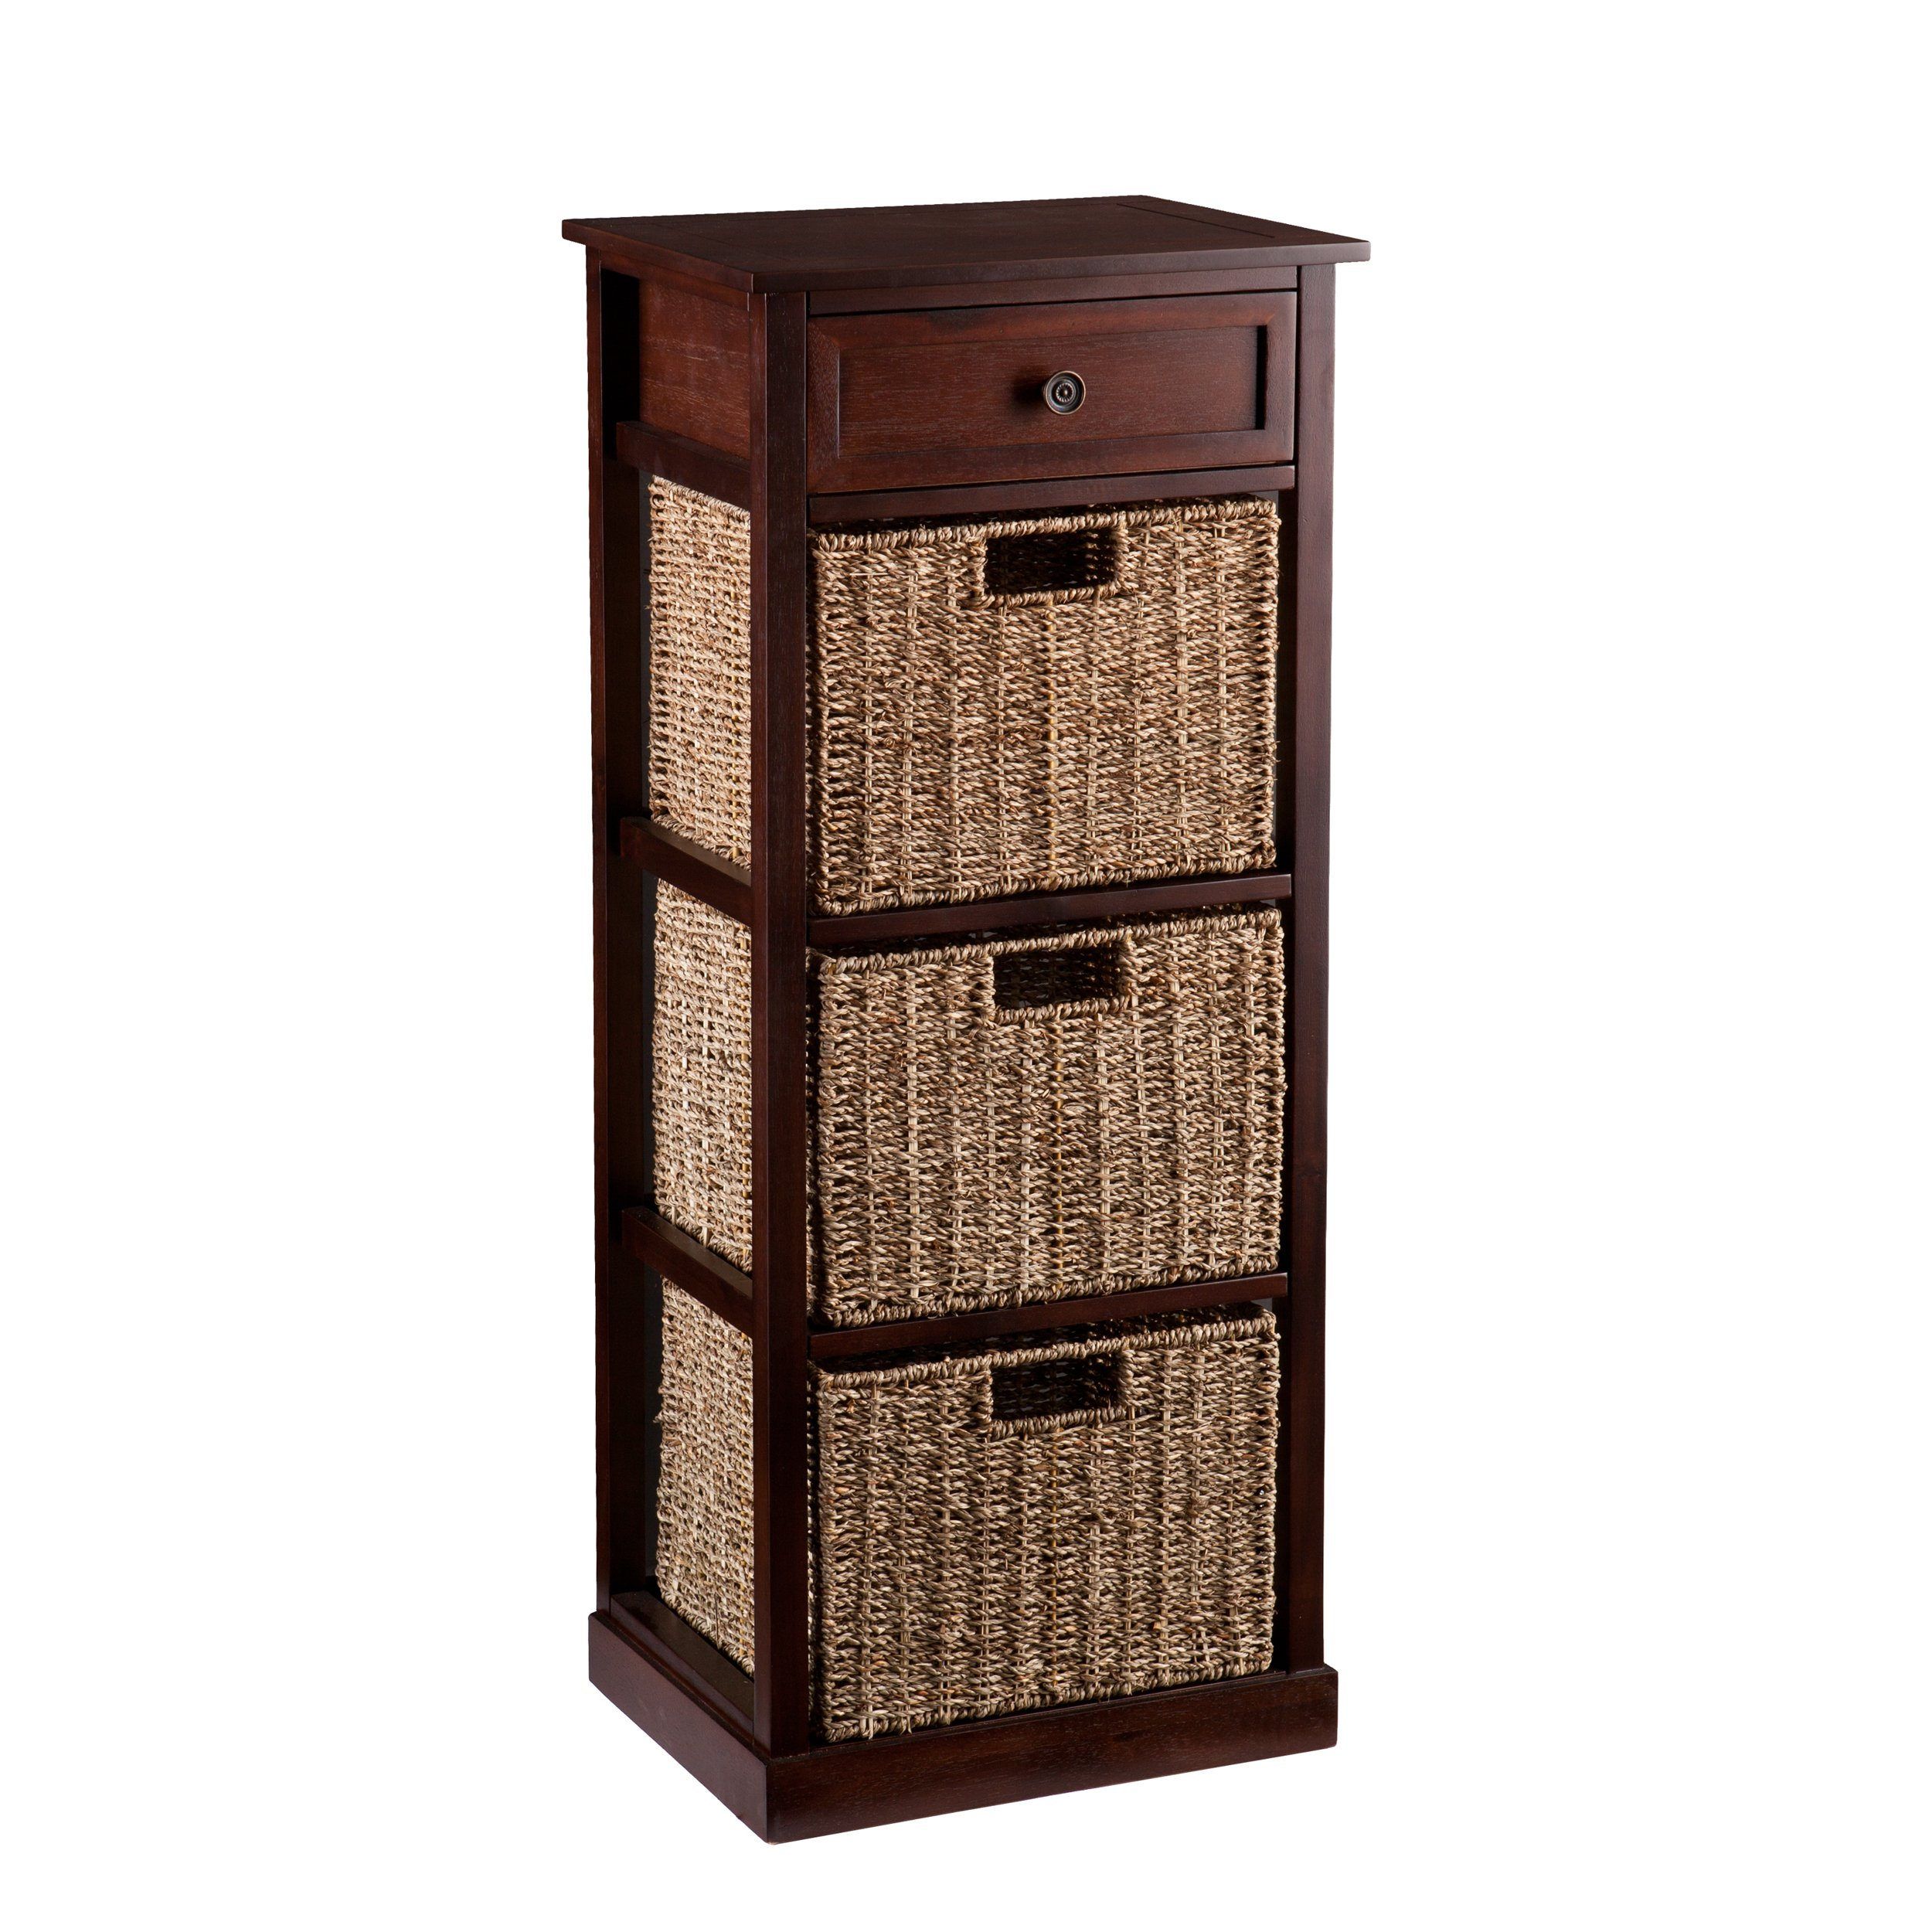 Kenton 3-Basket Storage Tower